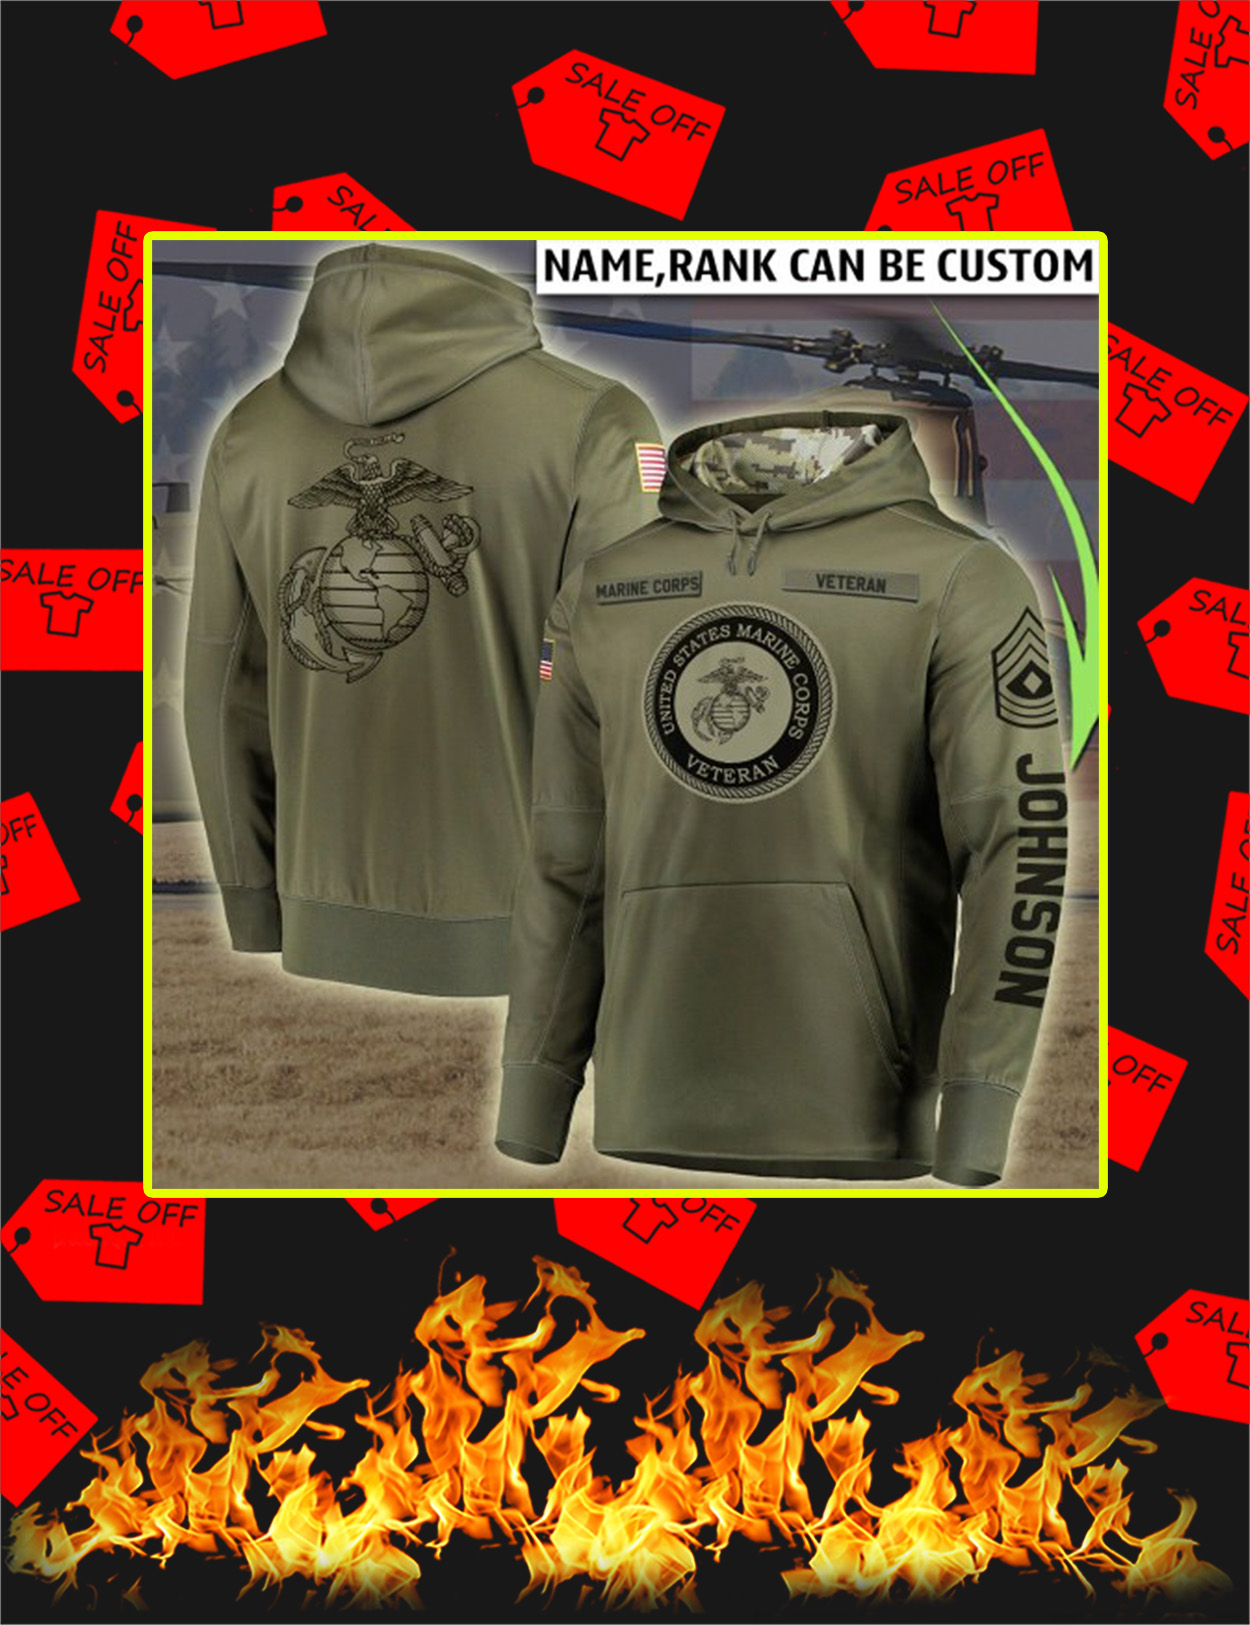 Personalized Custom Name US Marine Corps Veteran All Over Printed Hoodie - Size M